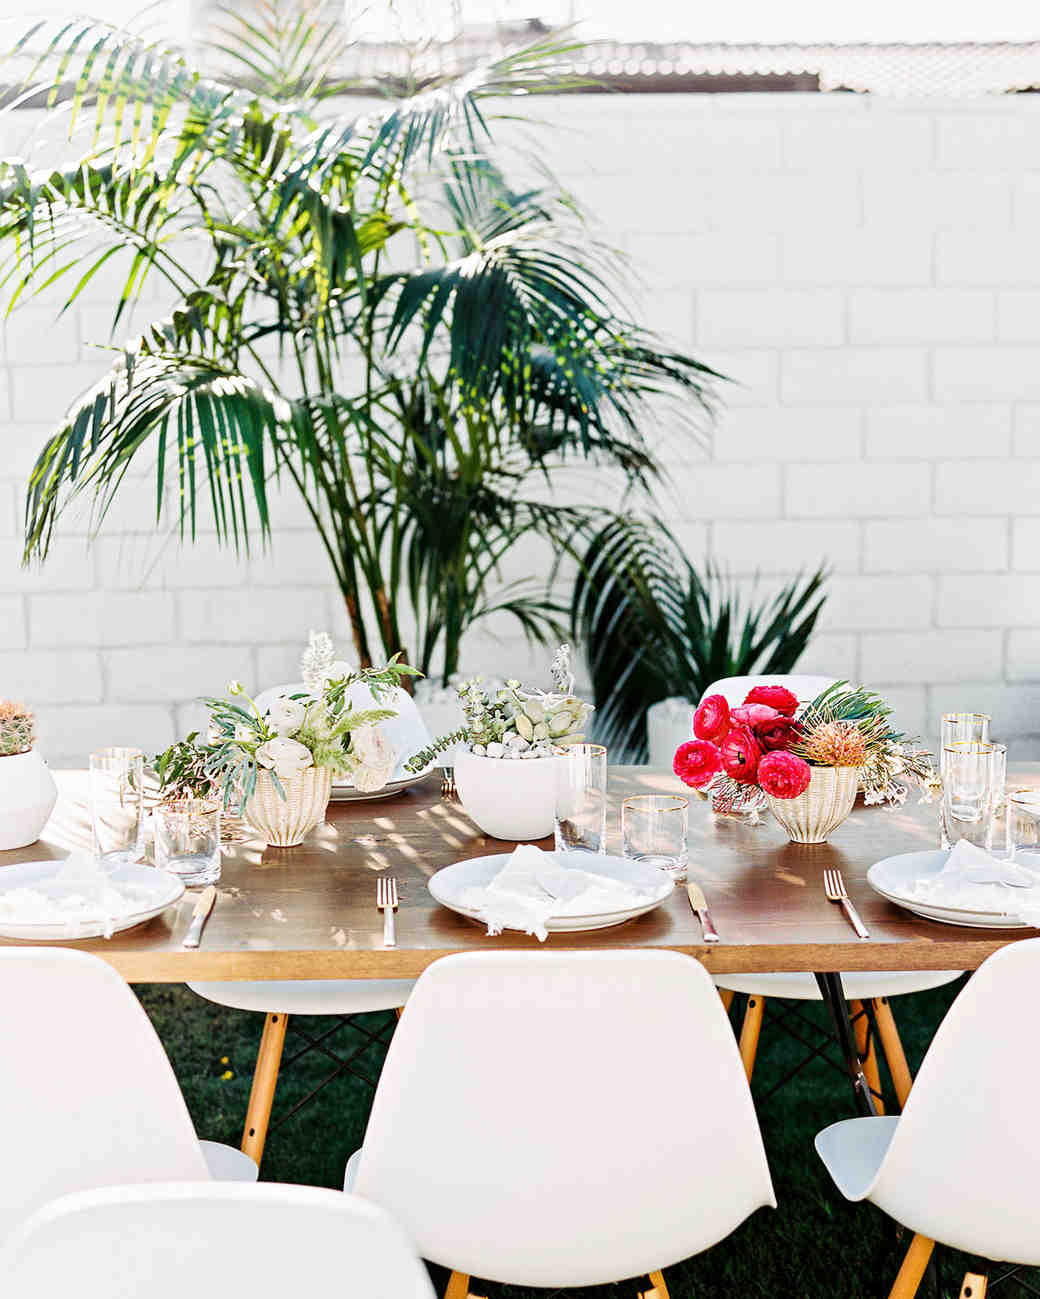 Modern Wedding Backdrop Ideas: 20 Modern Wedding Centerpieces That'll Surprise Your